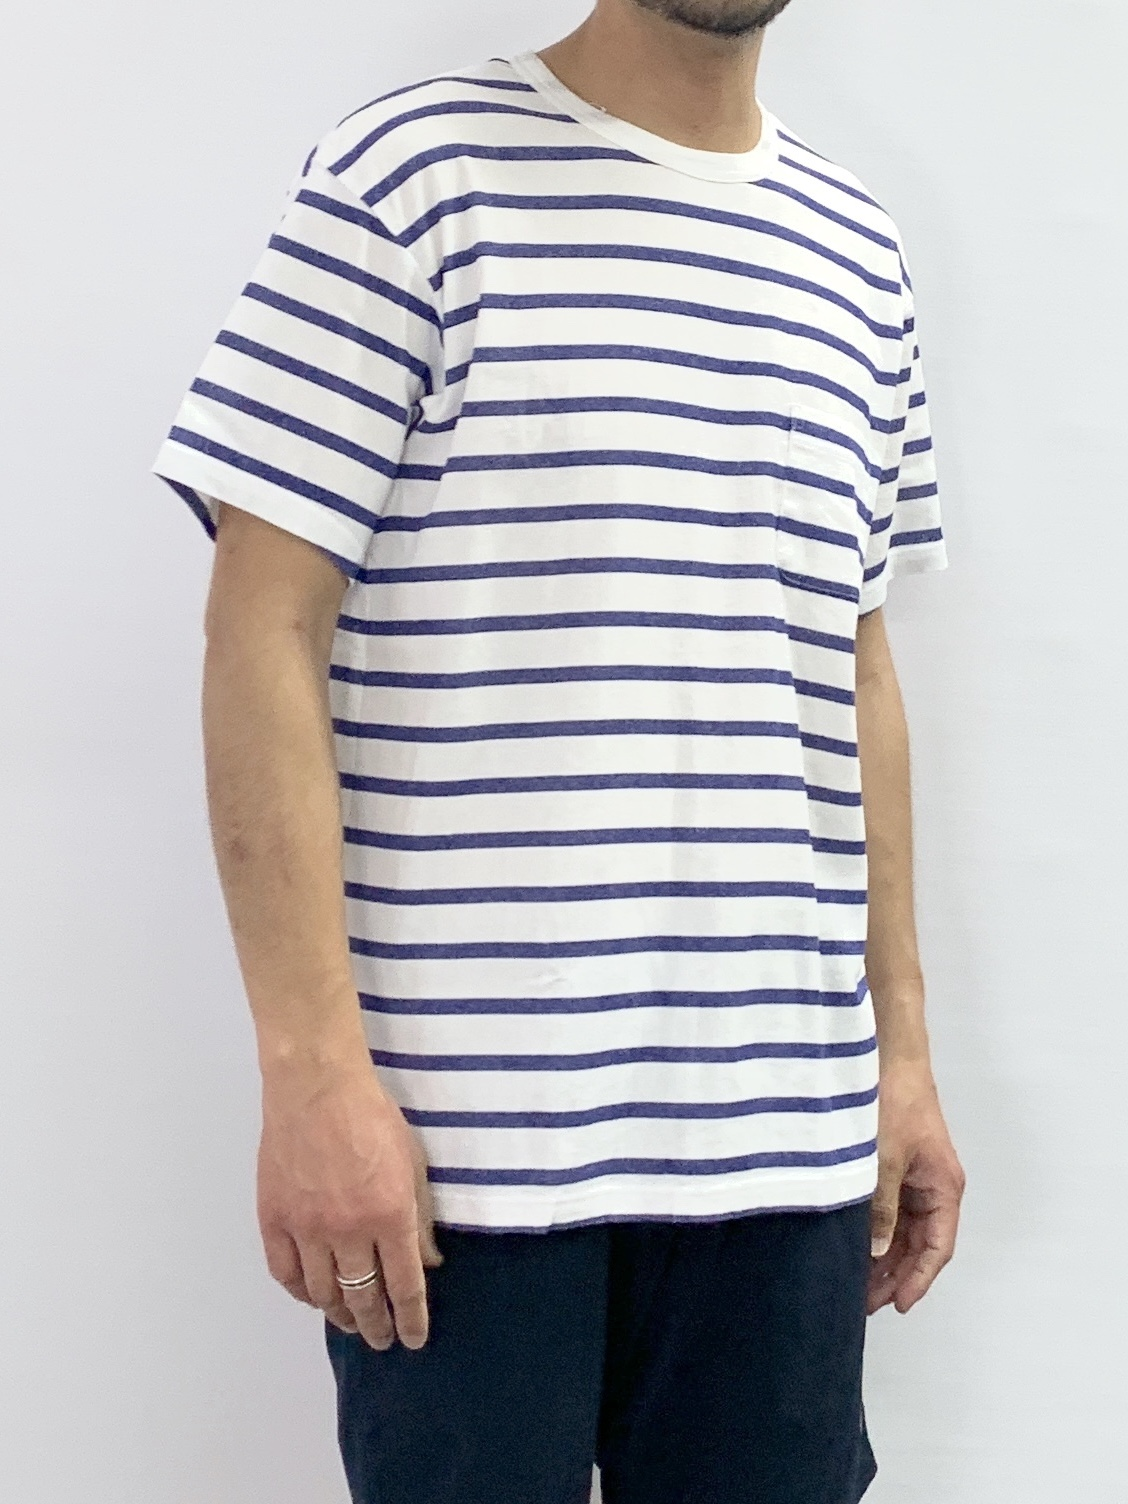 CREW NECK BORDER POCKET SHORTSLEEVE T-SHIRT